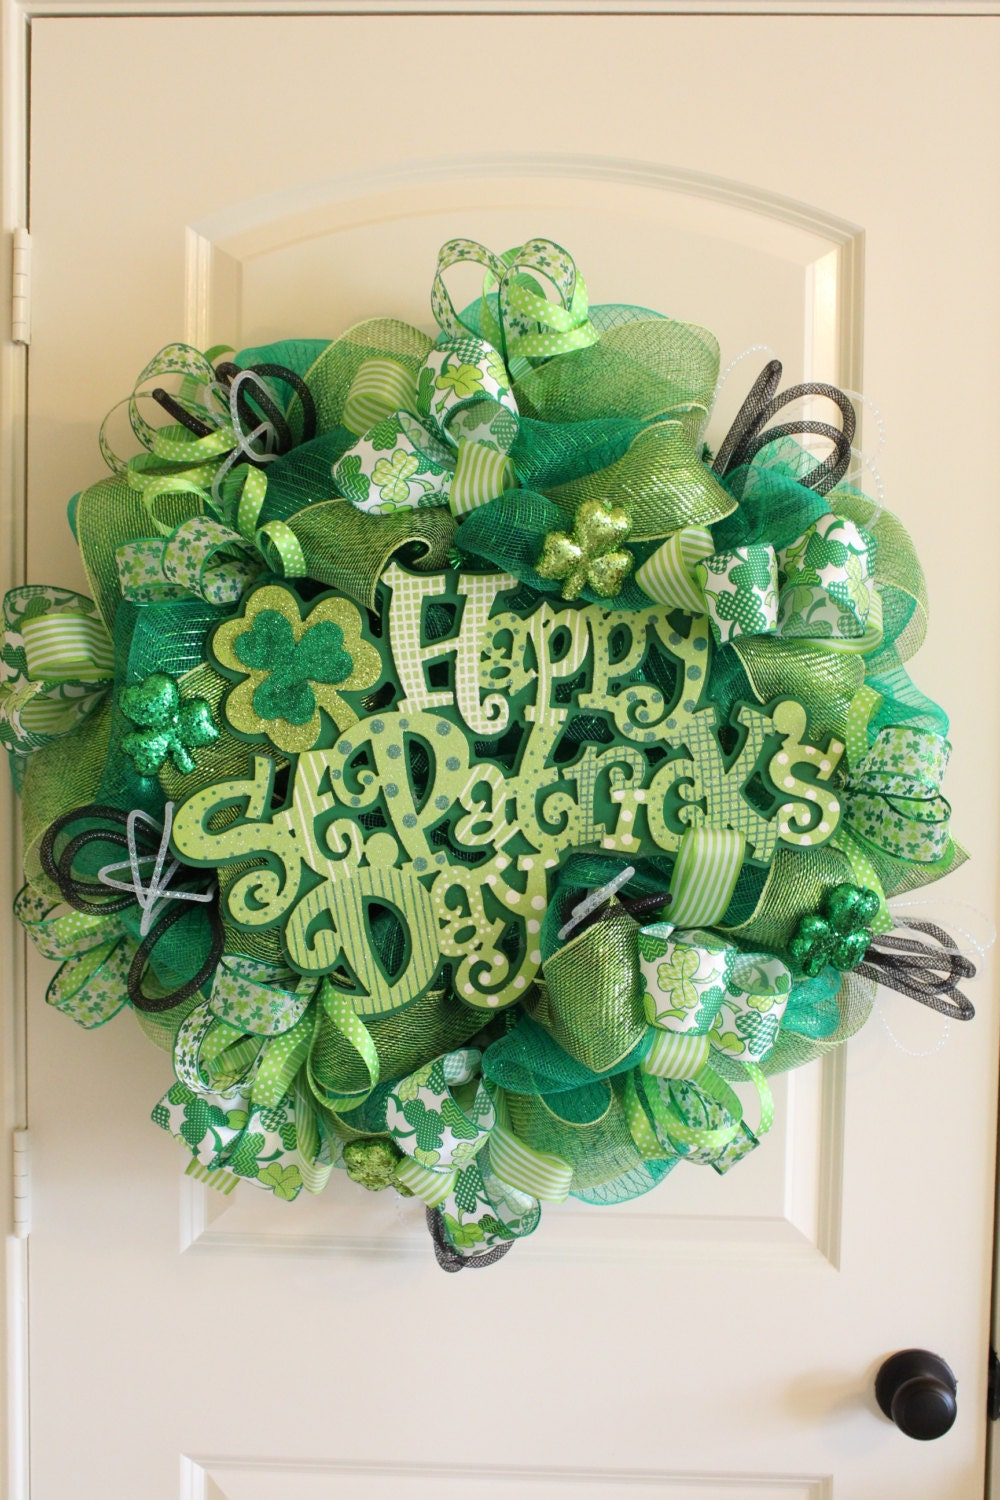 happy st patrick 39 s day deco mesh wreath by flowerstoenvy. Black Bedroom Furniture Sets. Home Design Ideas